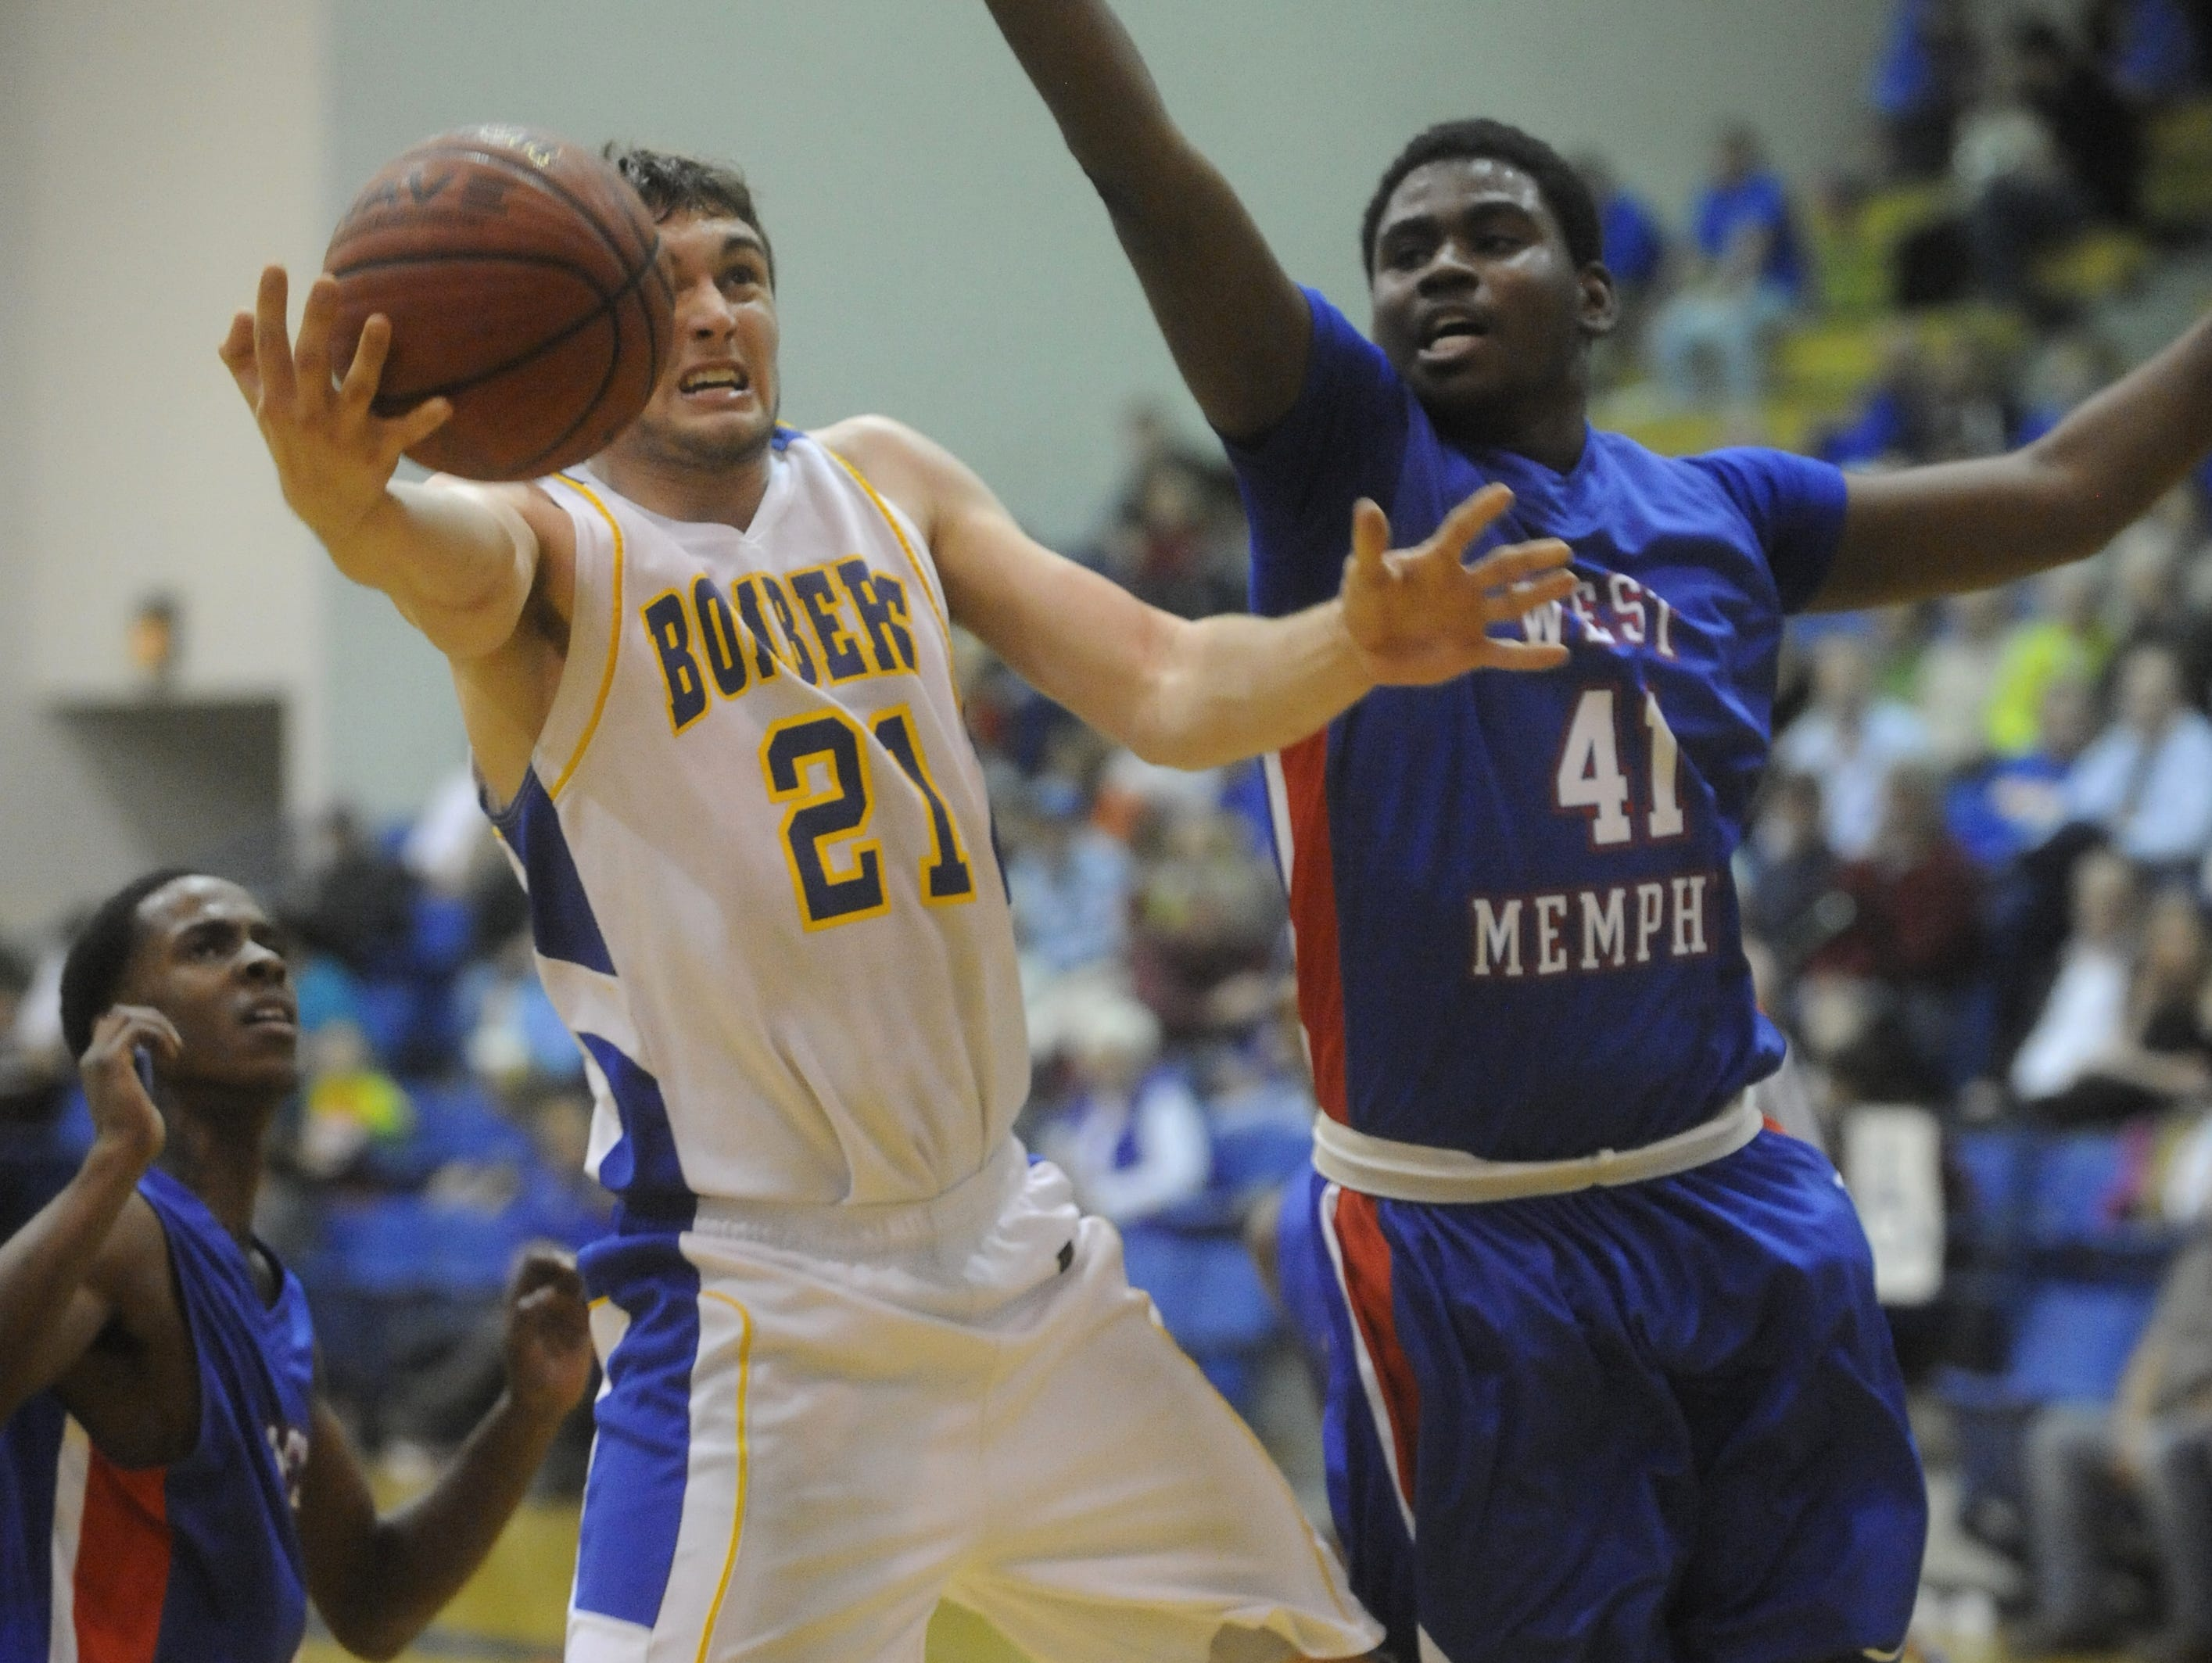 Mountain Home's Howie Wehmeyer (21) goes up for a layup during a game last season against West Memphis.